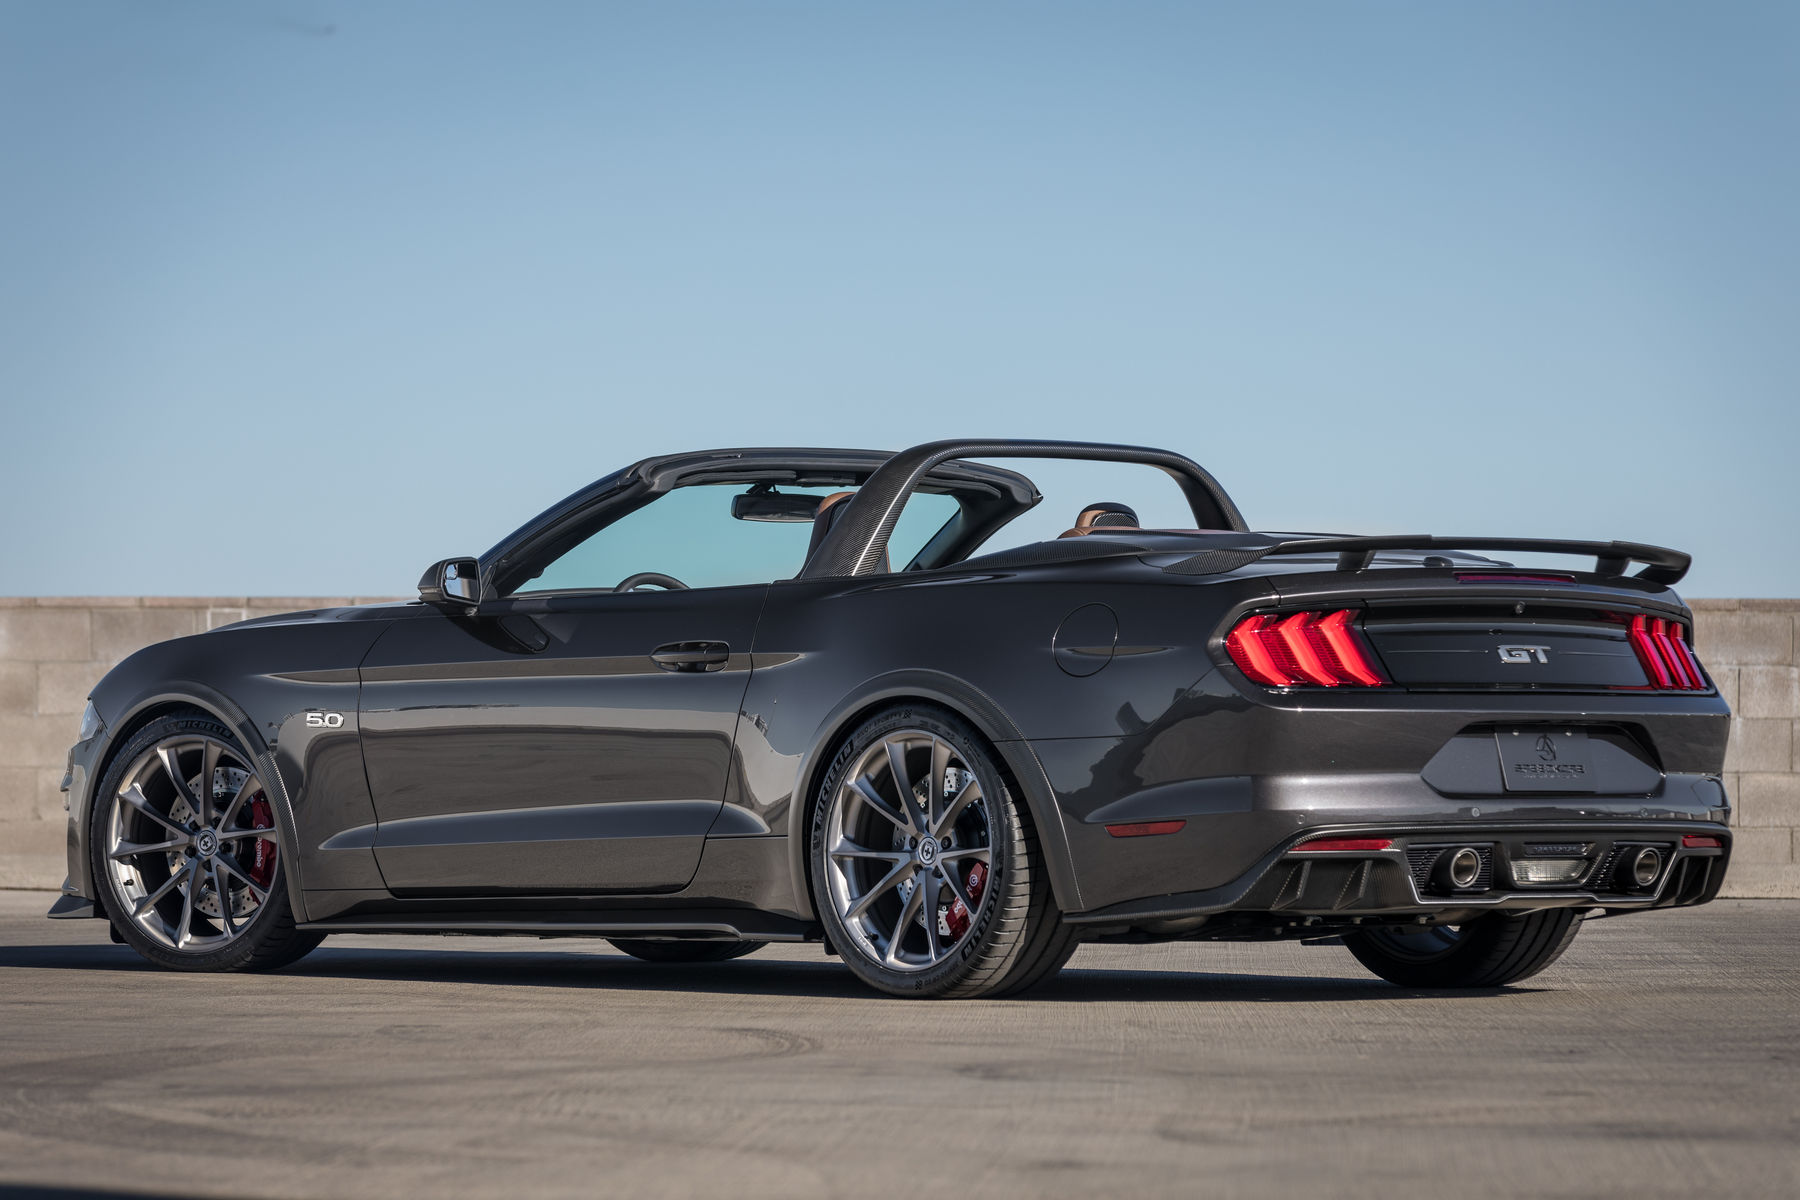 2018 ford mustang gt convertible by speedkore performance group fordsema